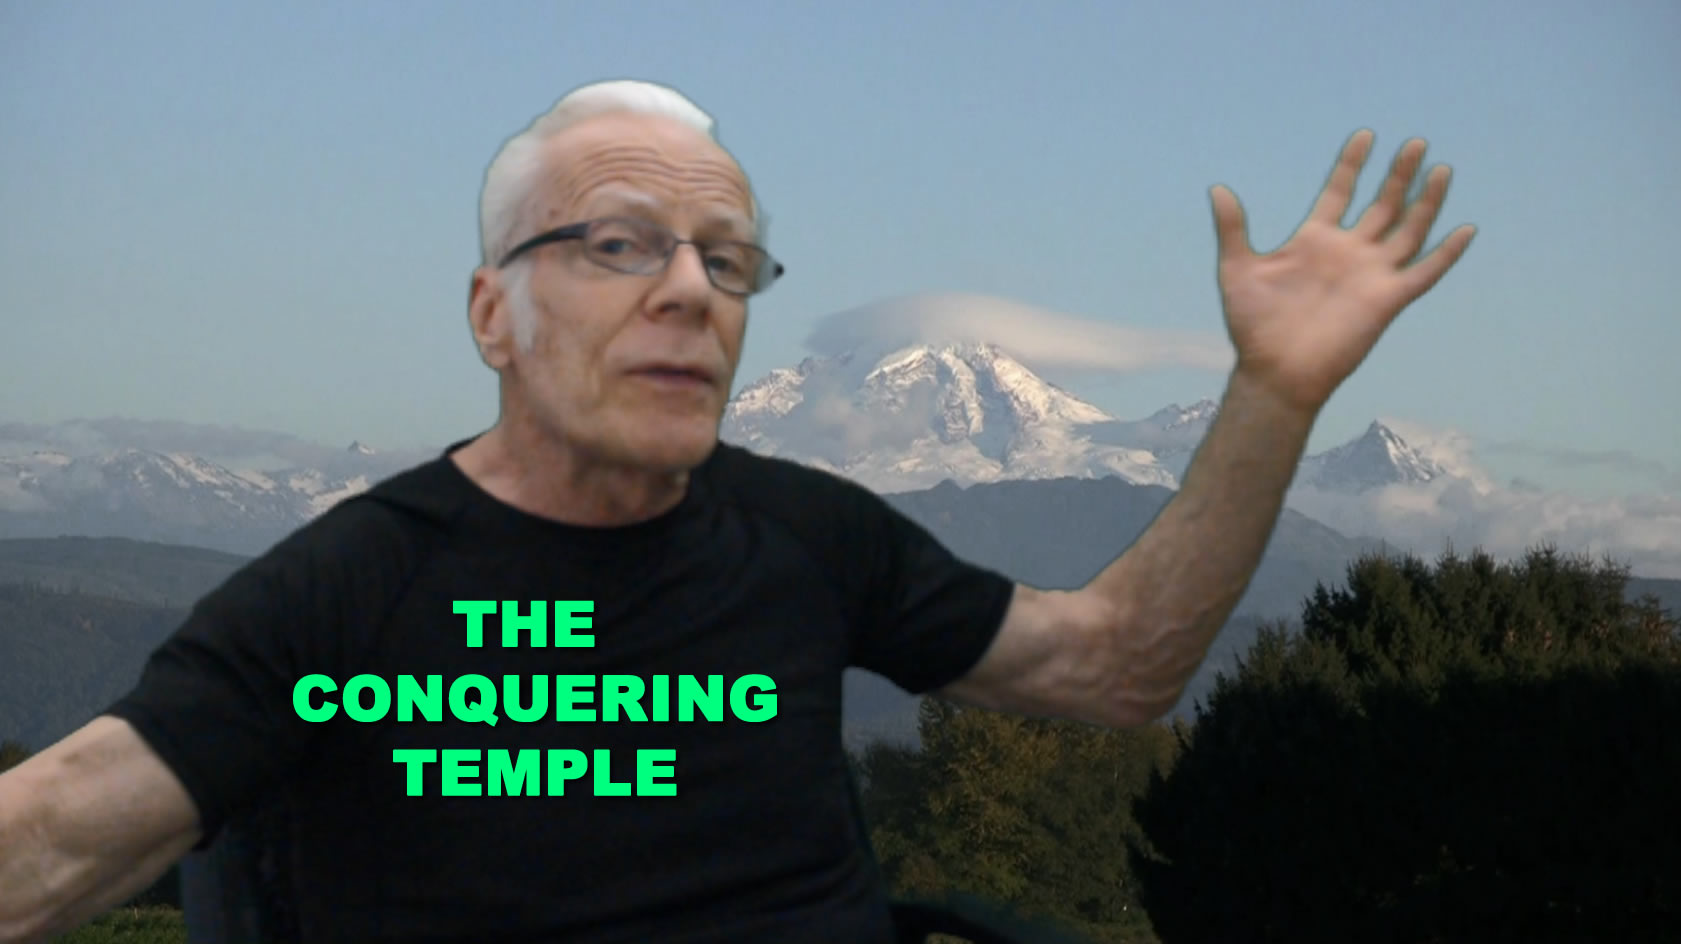 The Conquering Temple